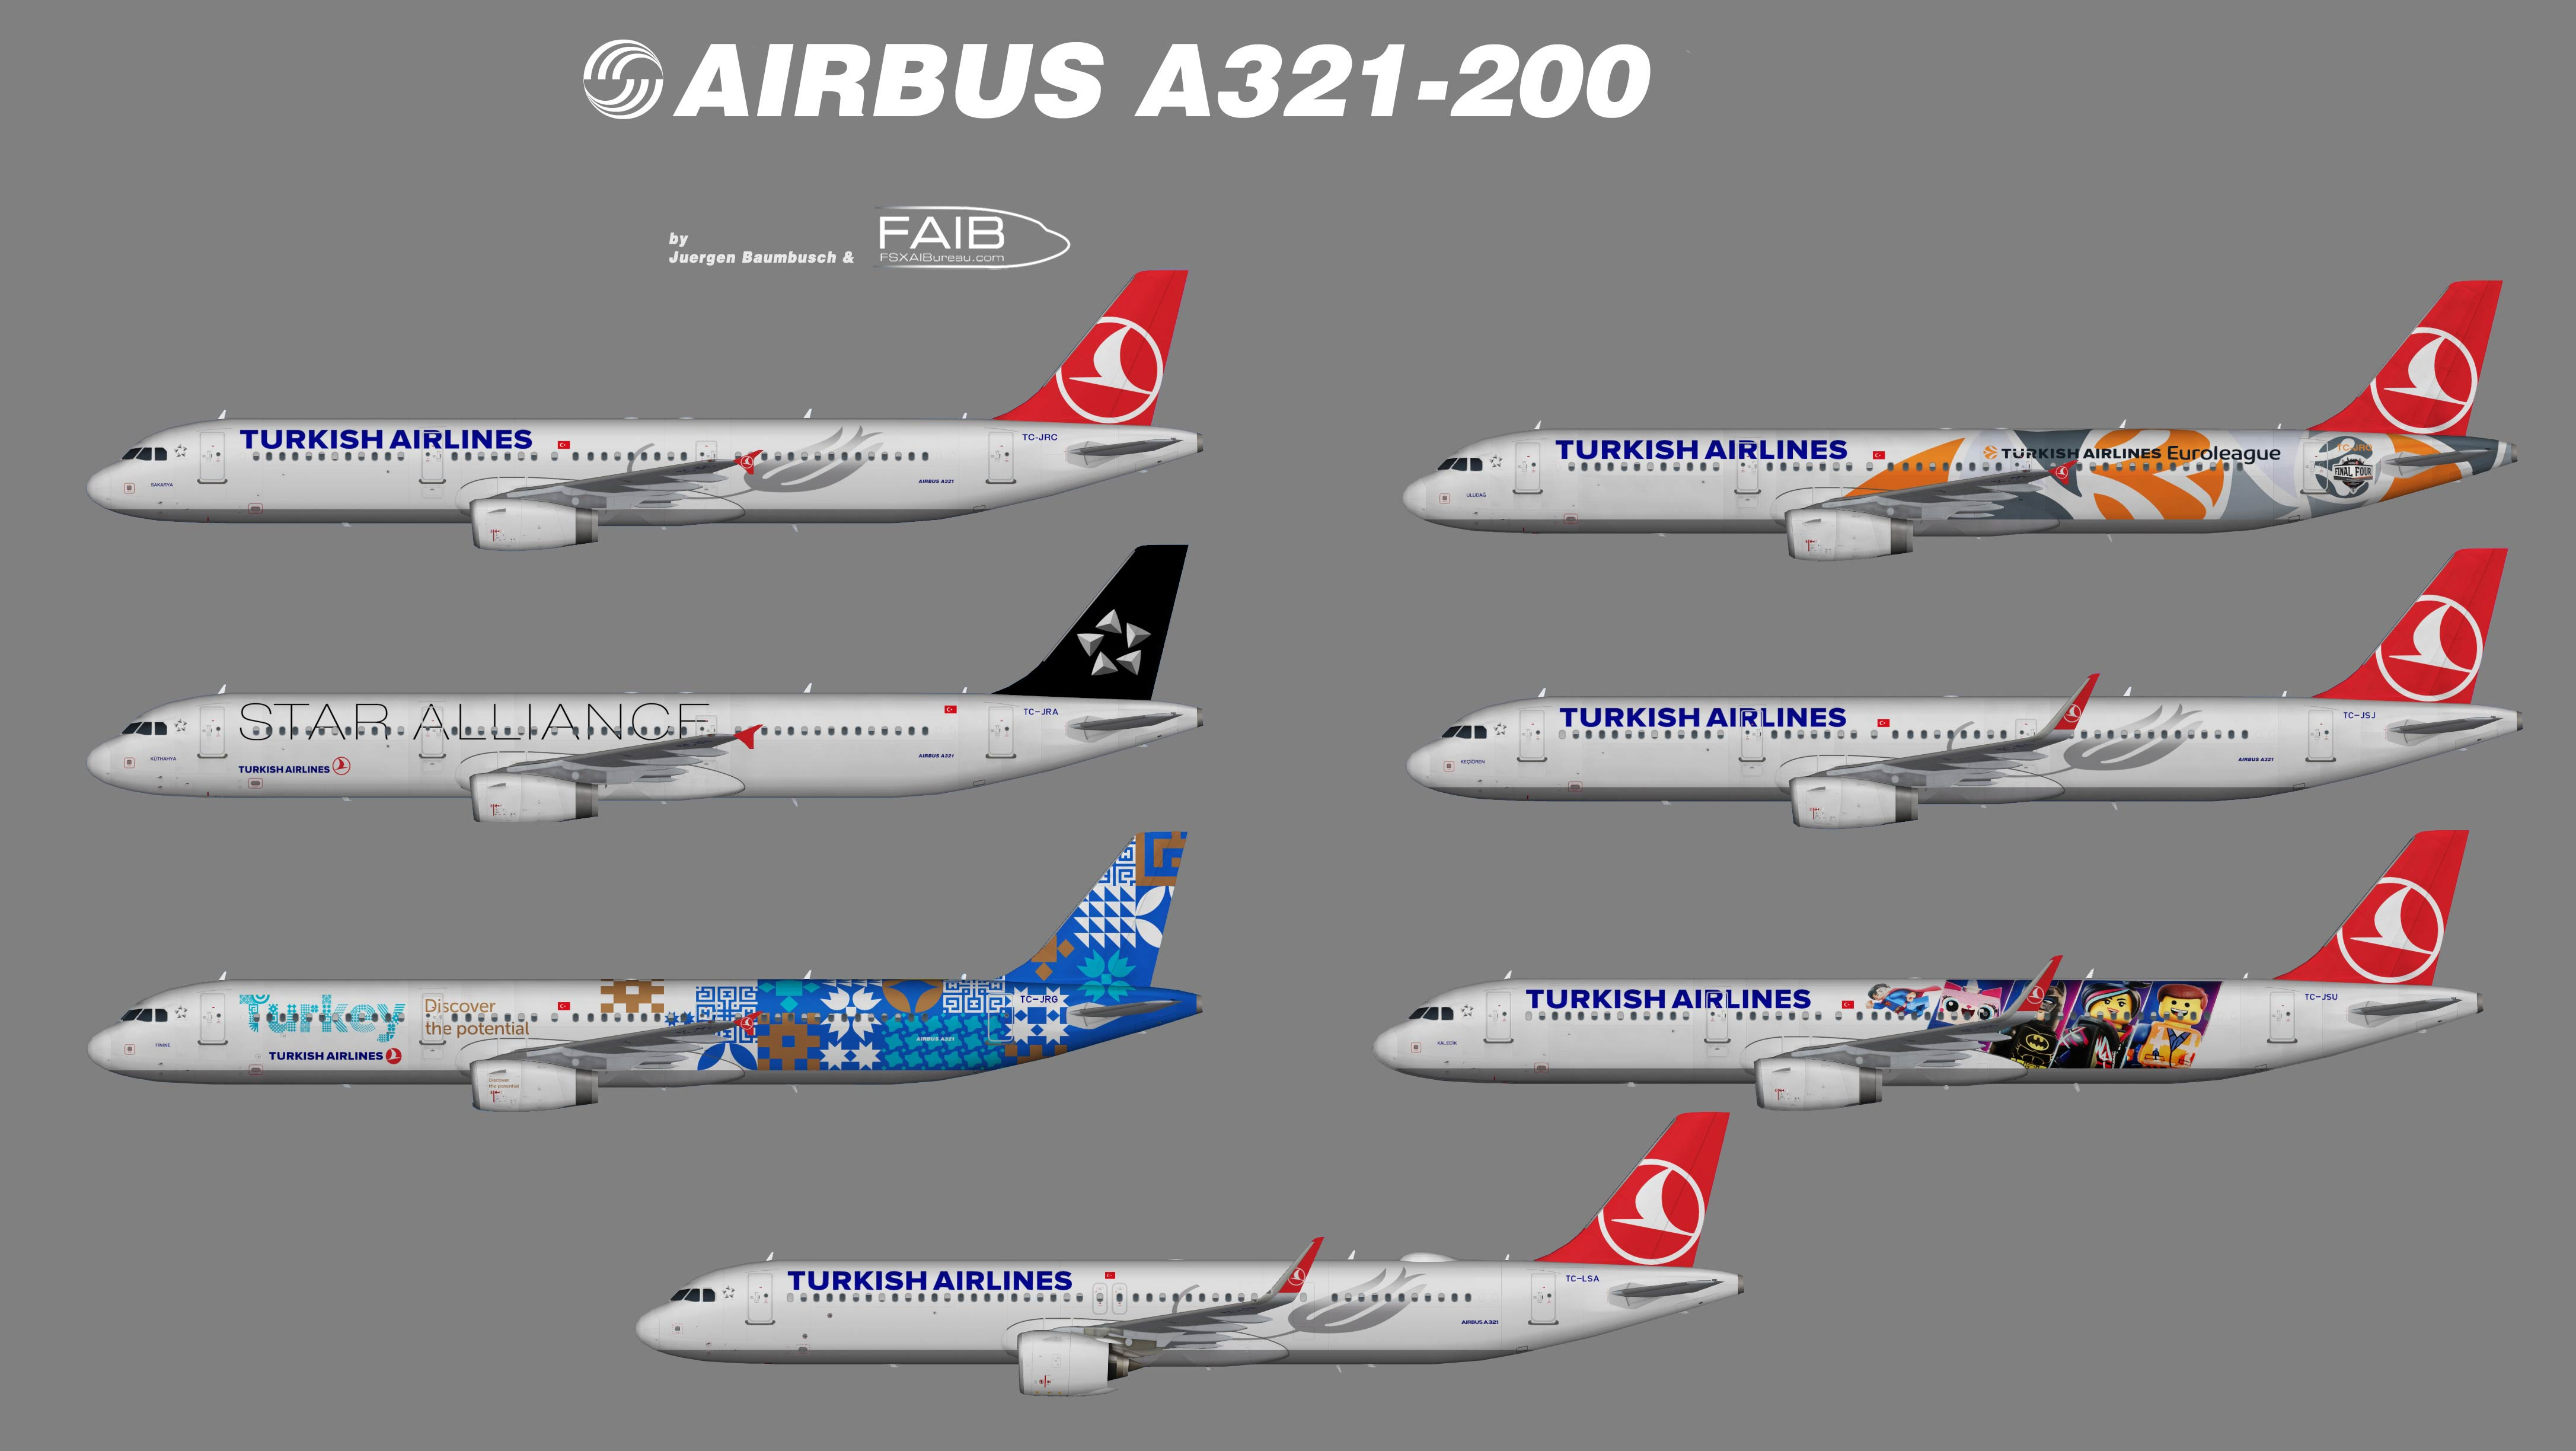 Turkish Airlines Airbus A321-200